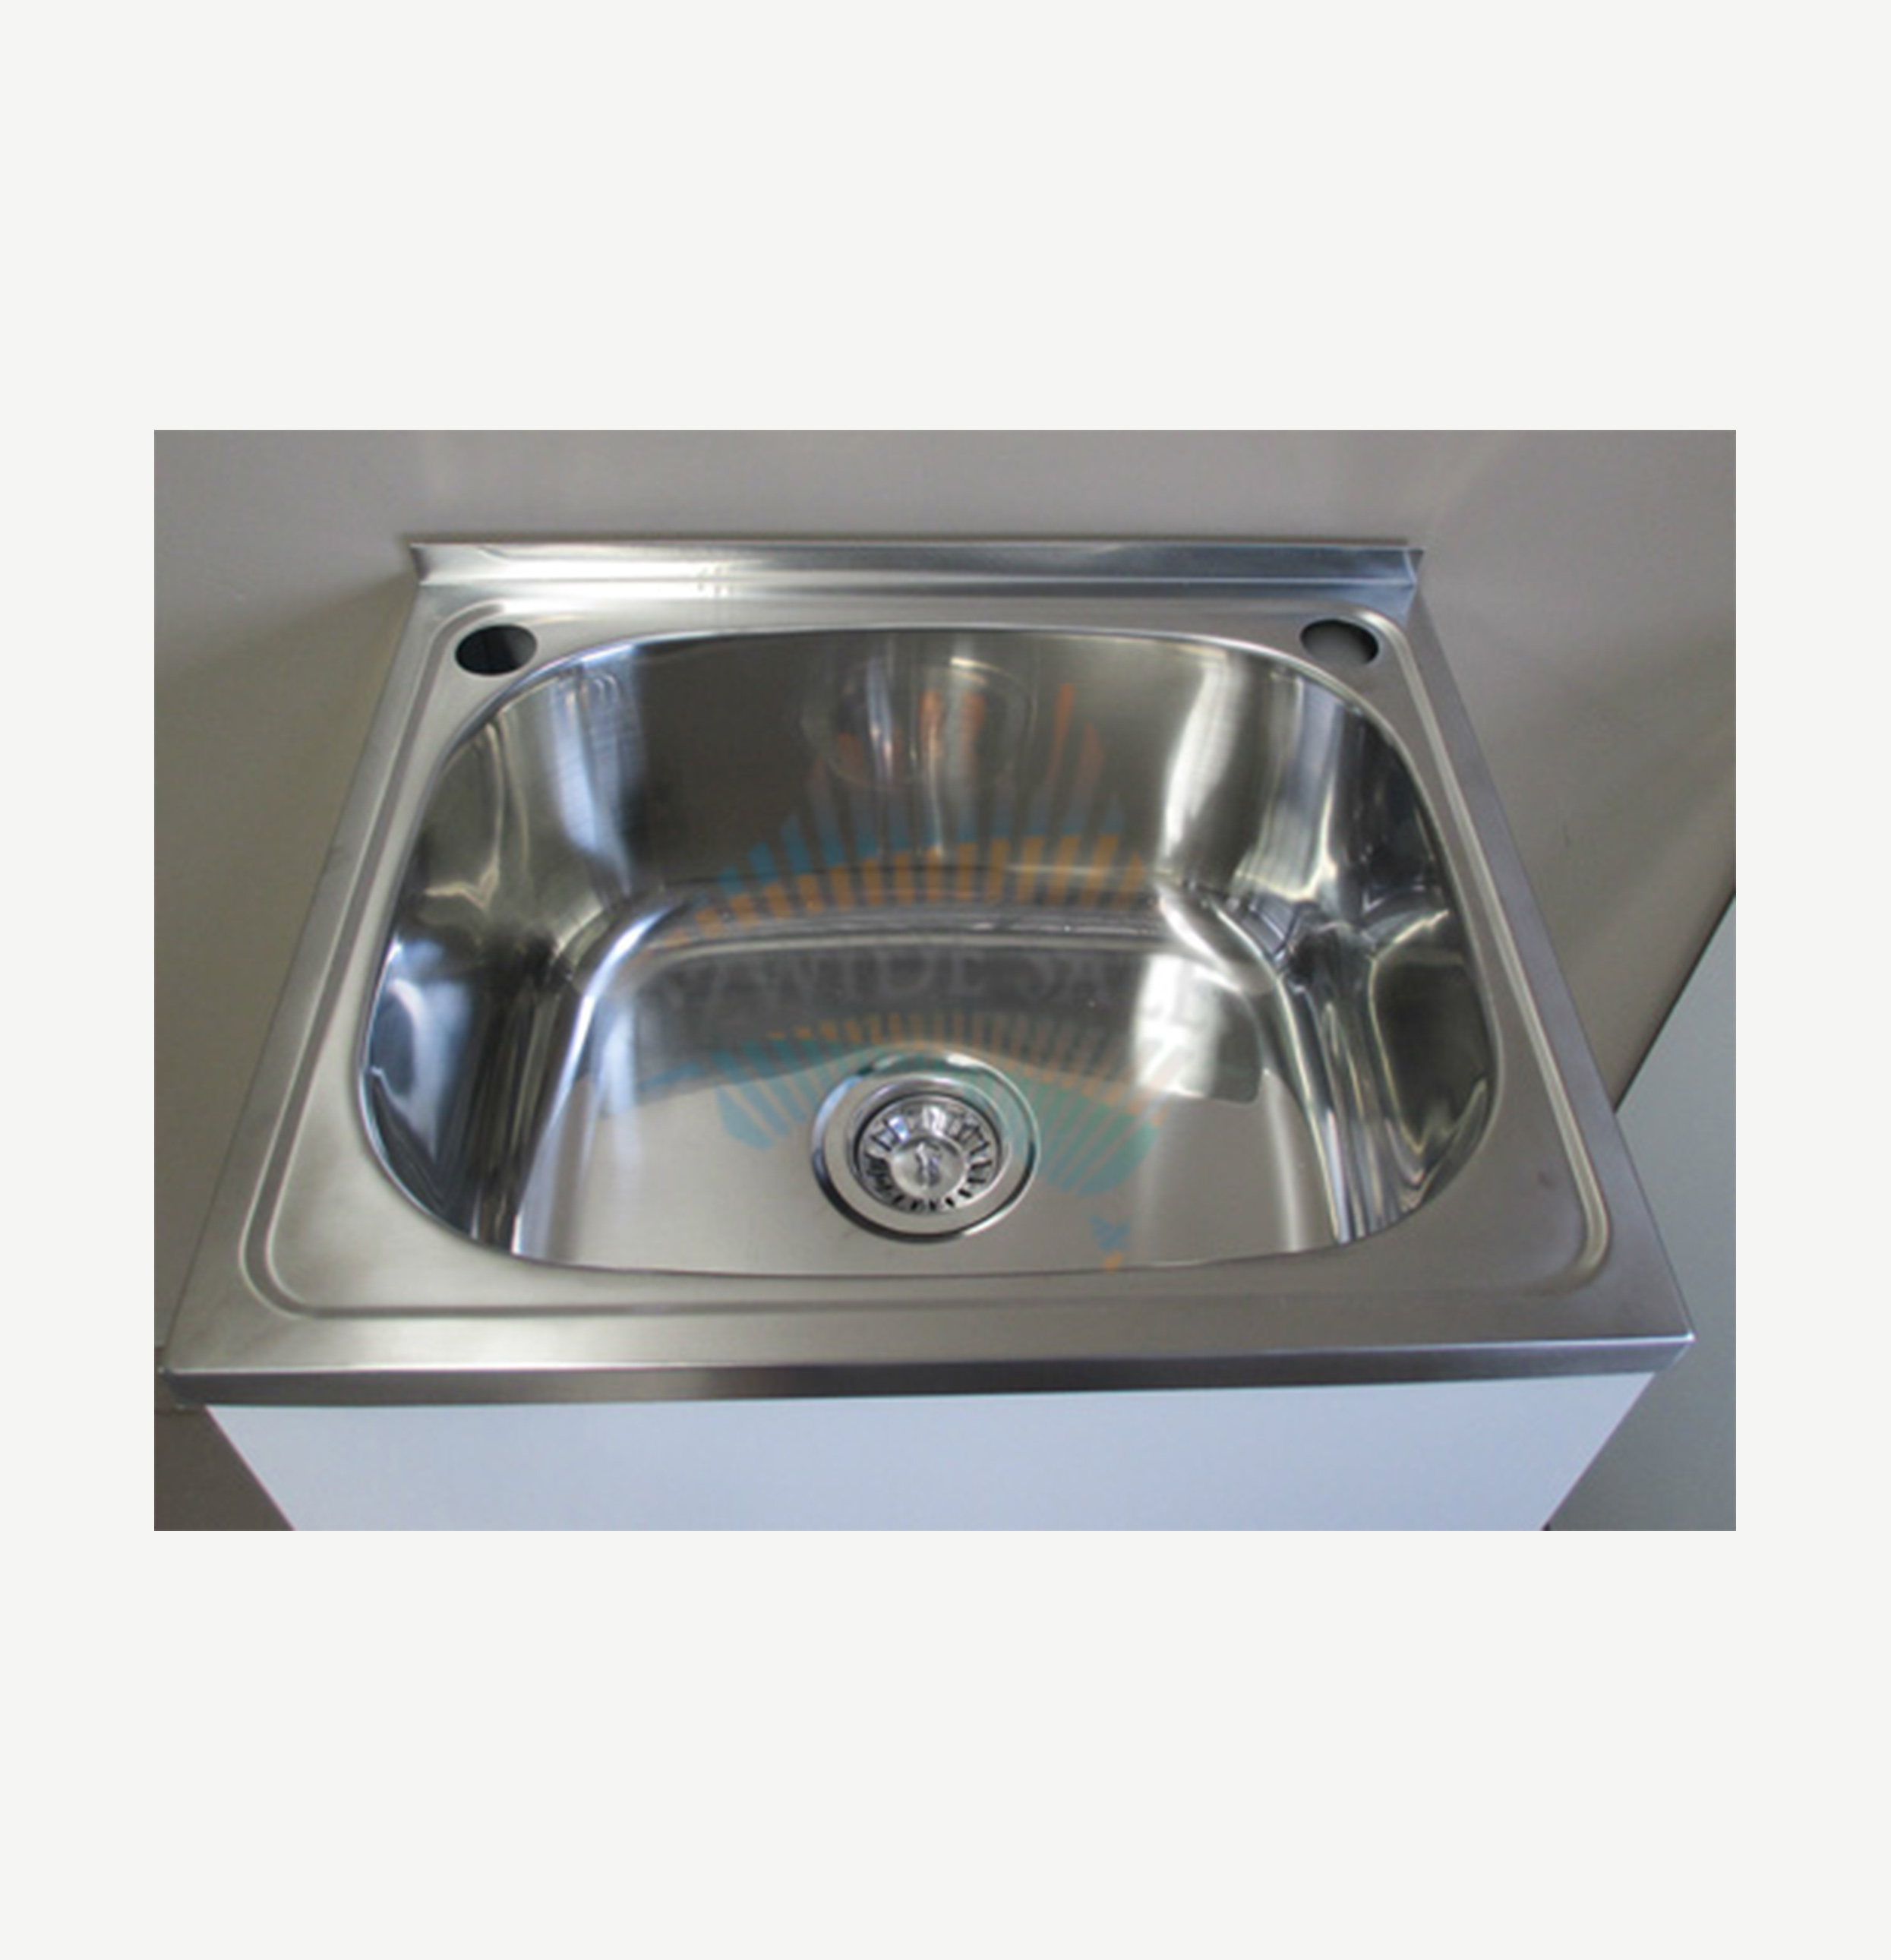 Stainless Steel Laundry Trough : Laundry Tub 35L Stainless Steel Sink Cabinet Trough Adjustable Waste ...